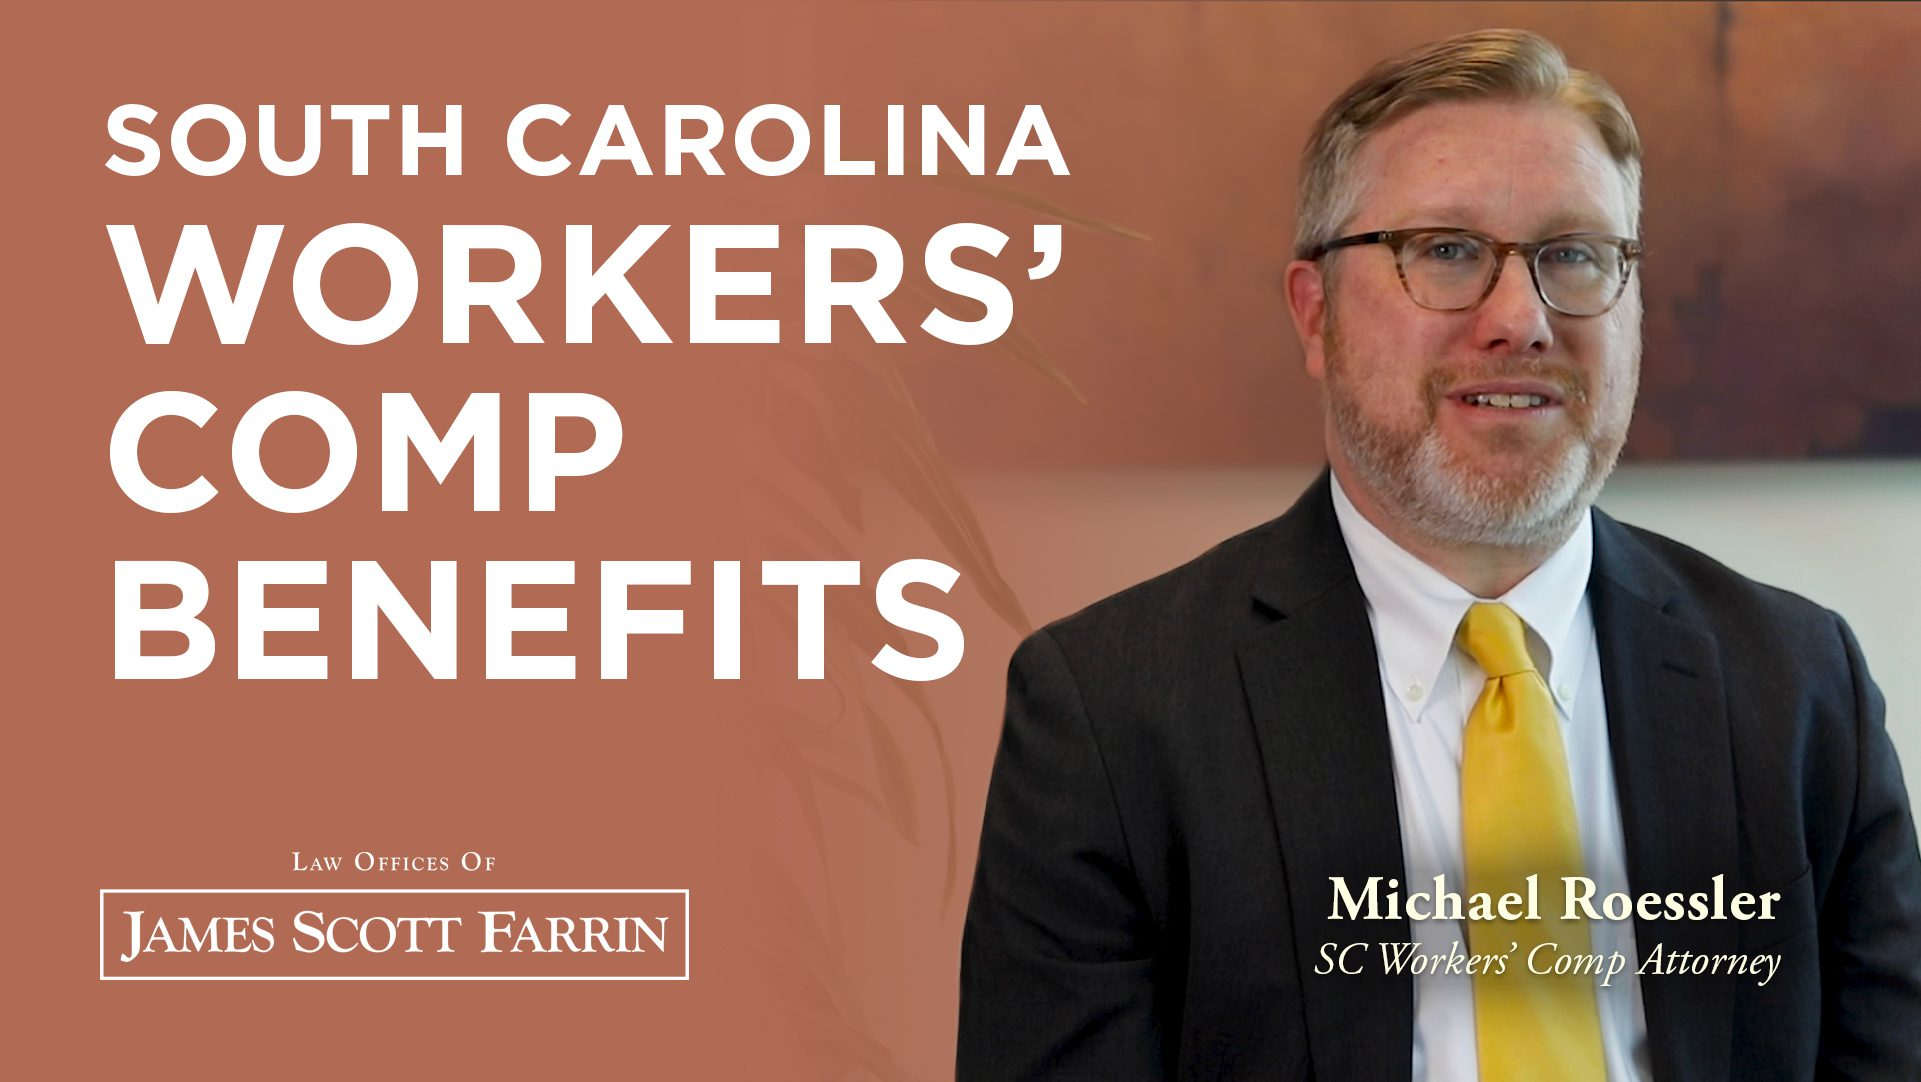 Michael Roessler shares South Carolina Workers' Comp Benefits